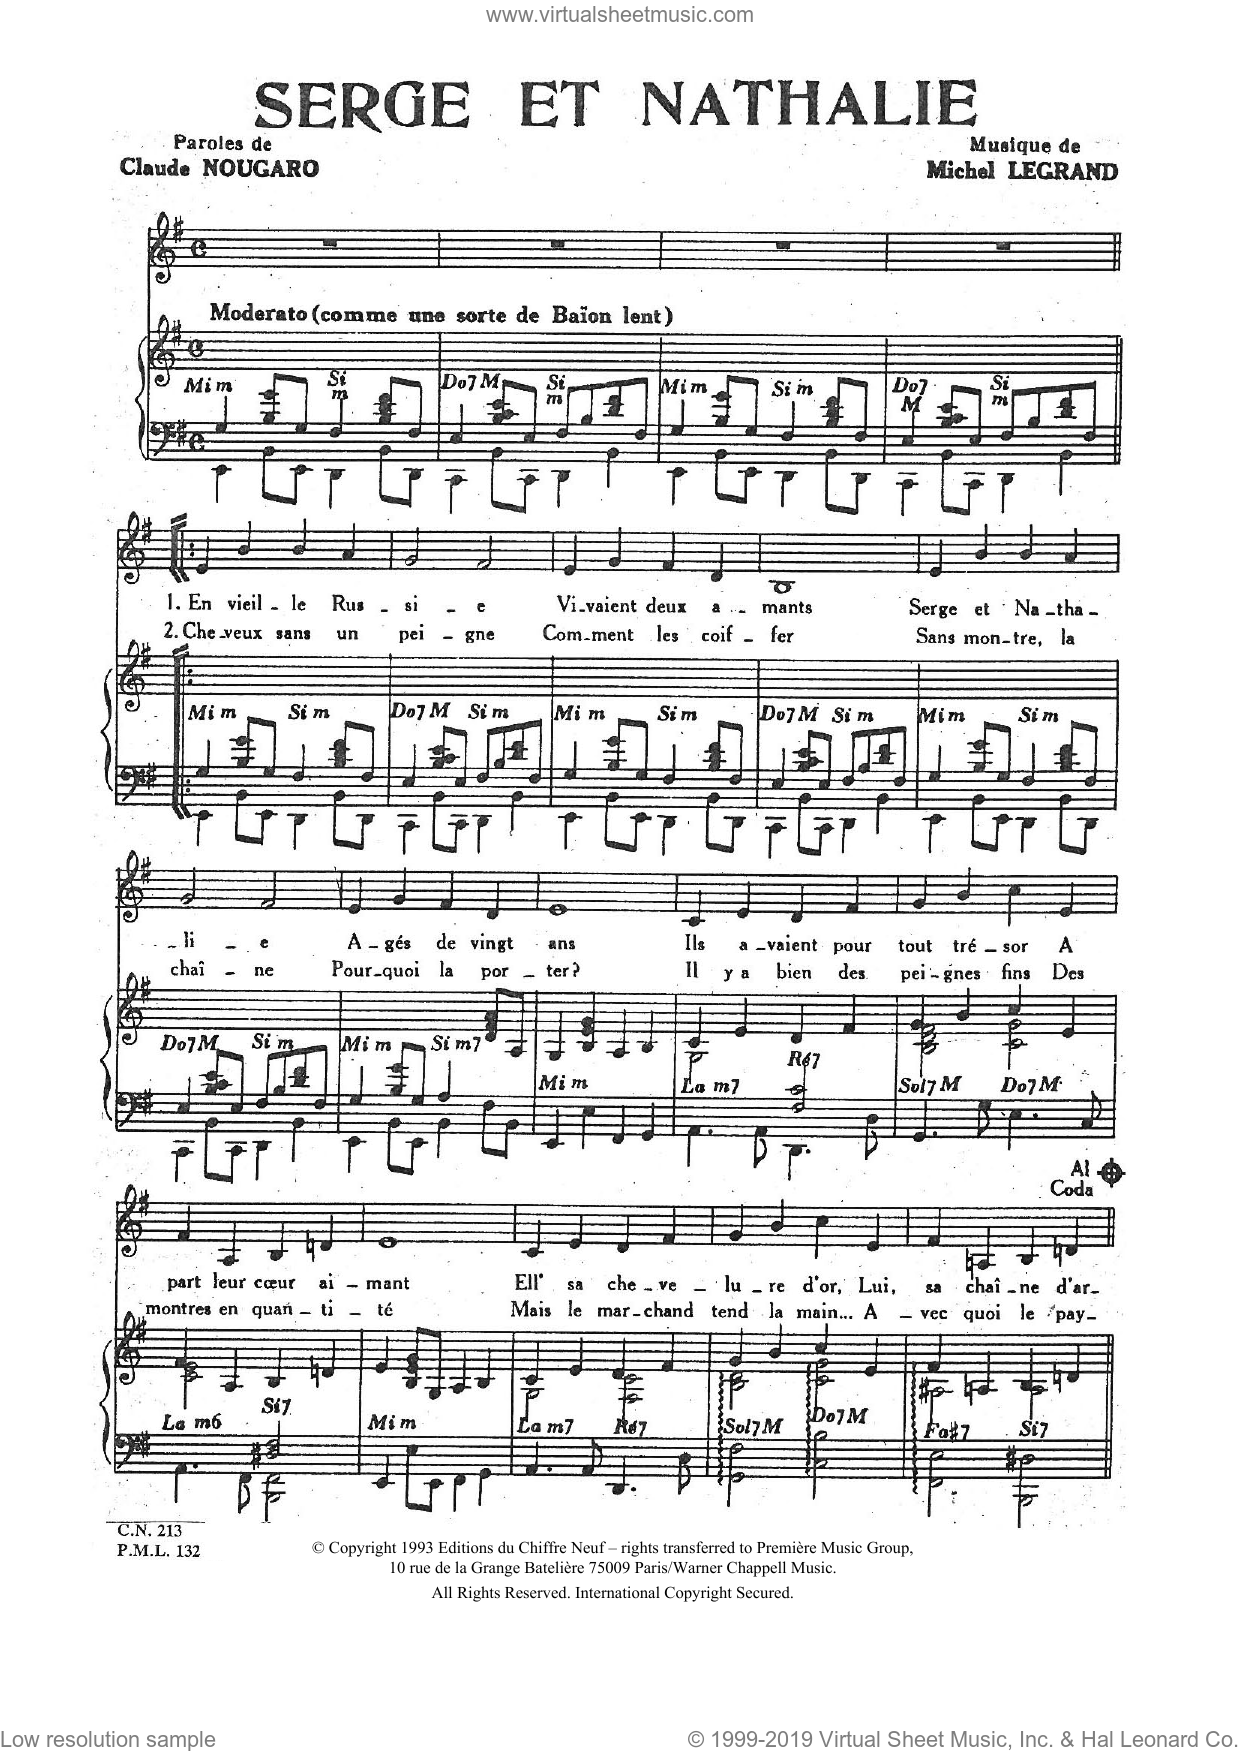 Serge Et Nathalie sheet music for voice and piano by Claude Nougaro and Michel LeGrand, intermediate